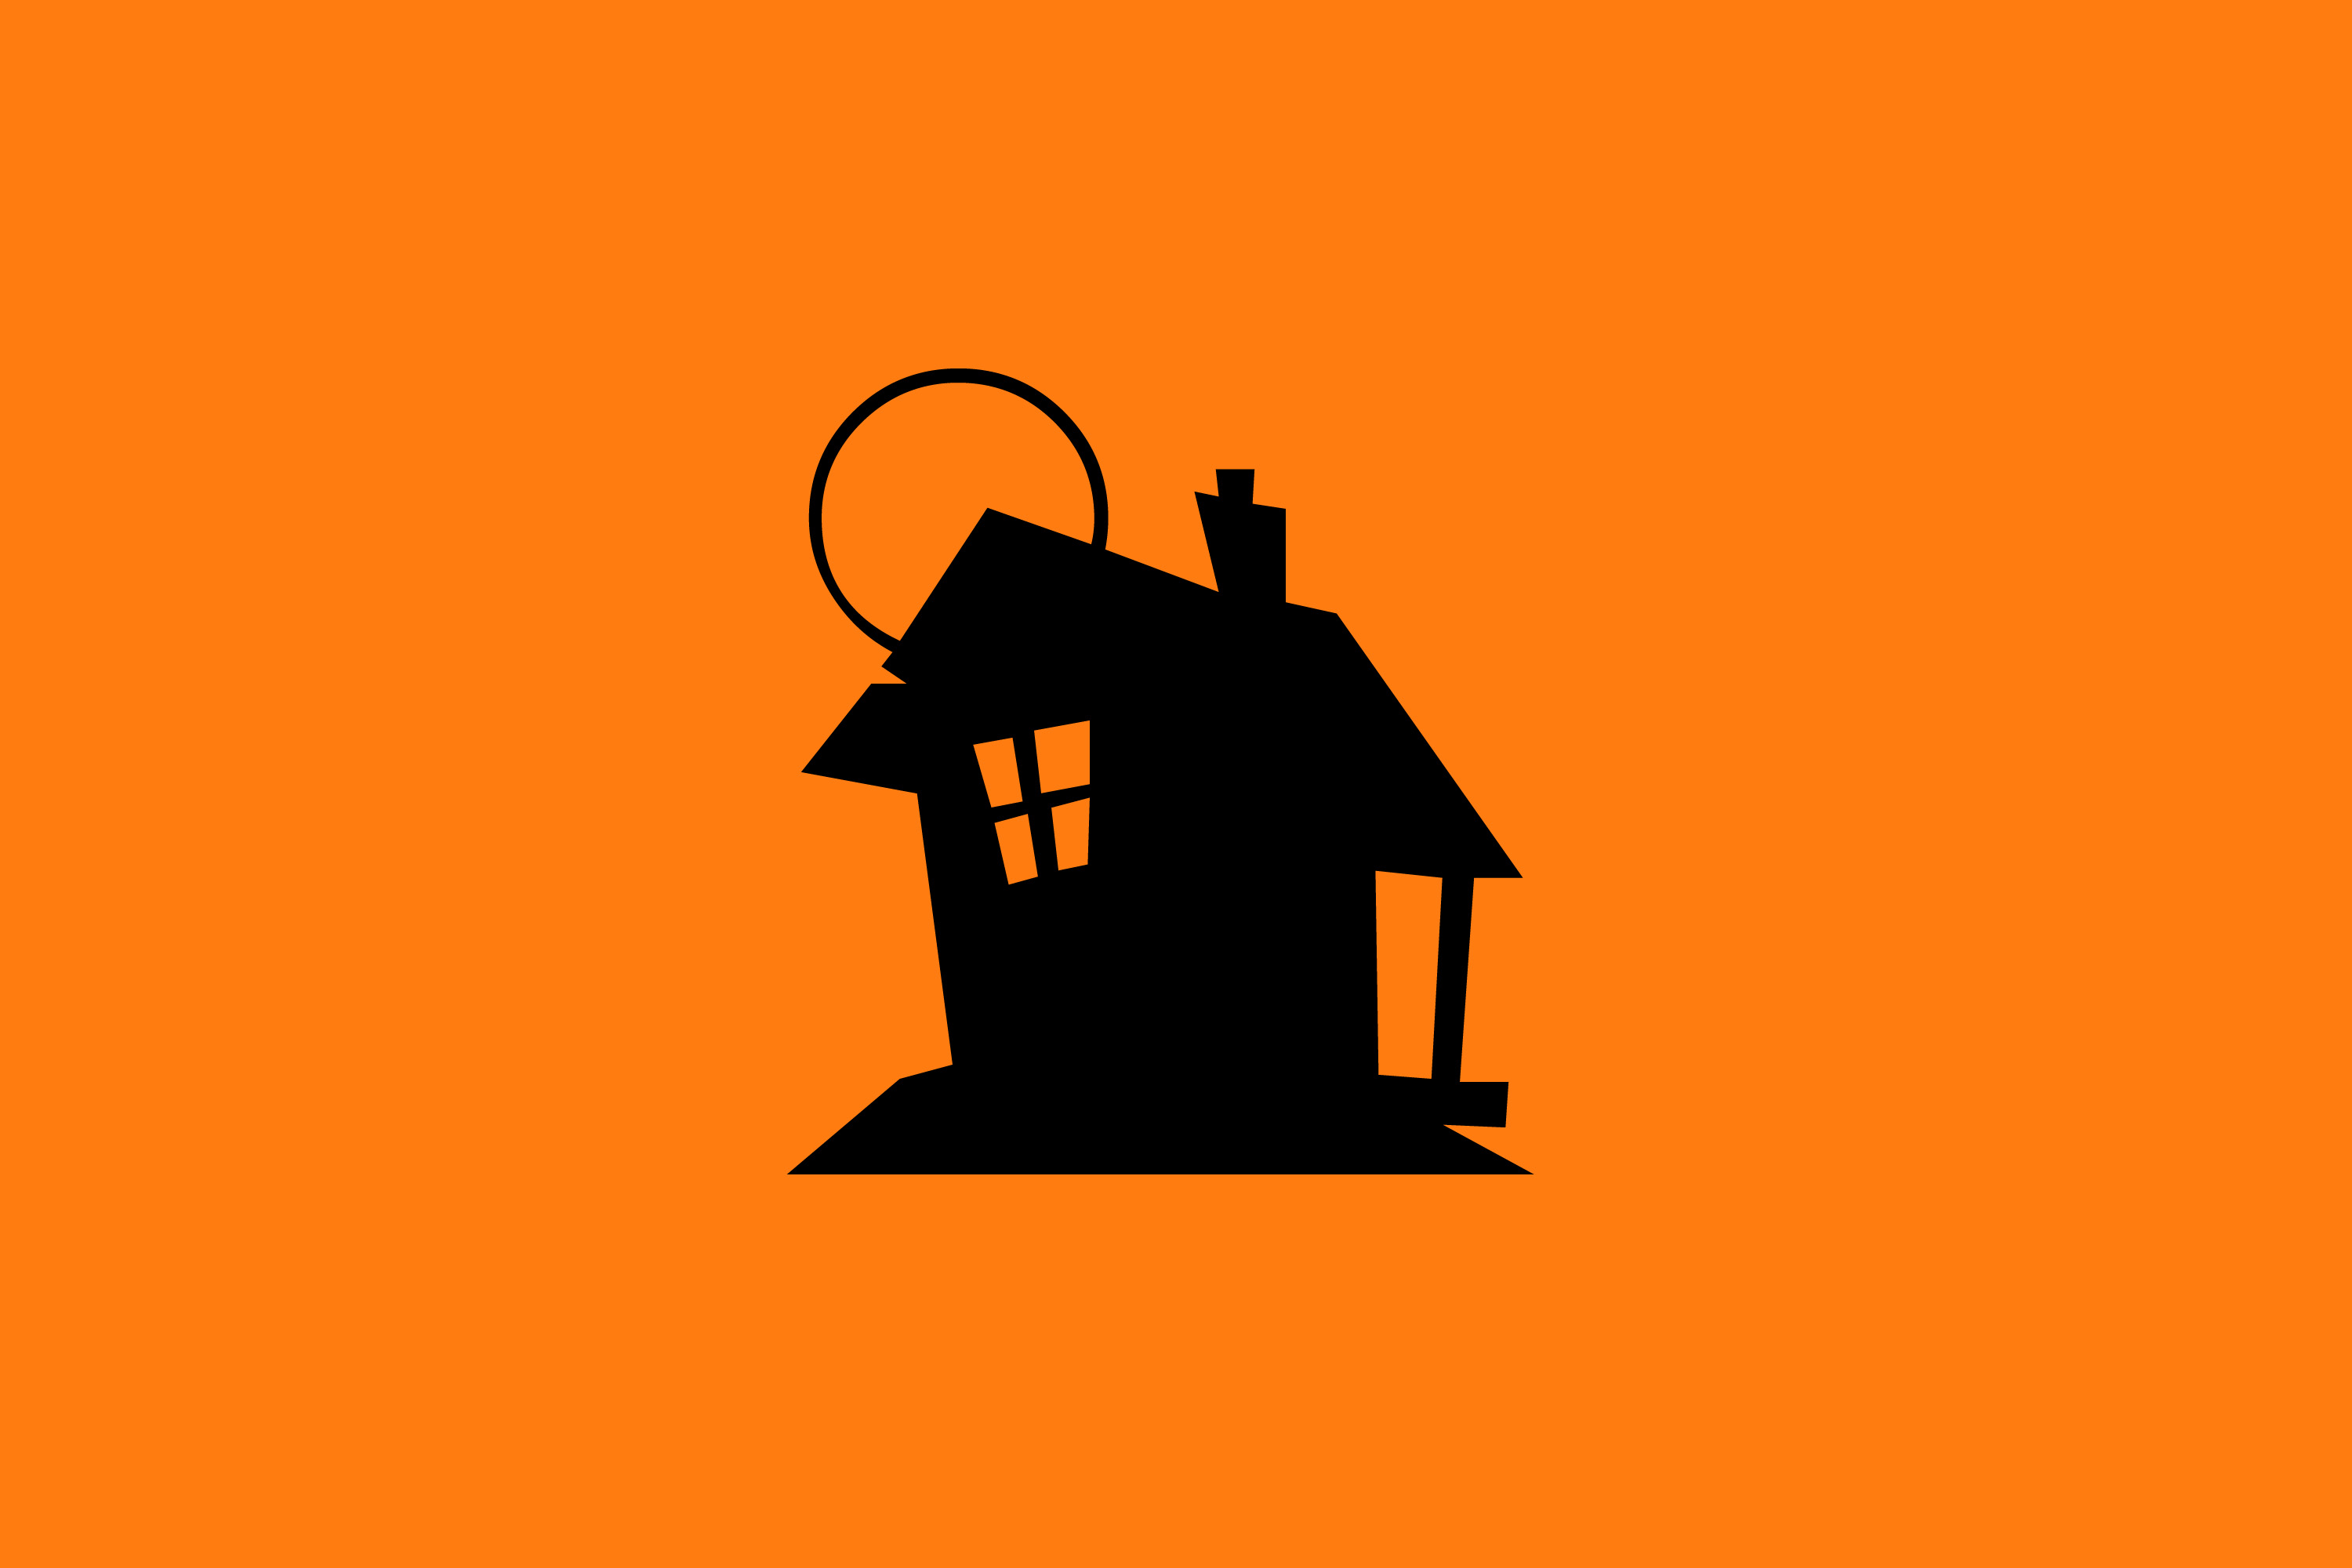 3000x2000 Image Of Haunted House Creepyhalloweenimages